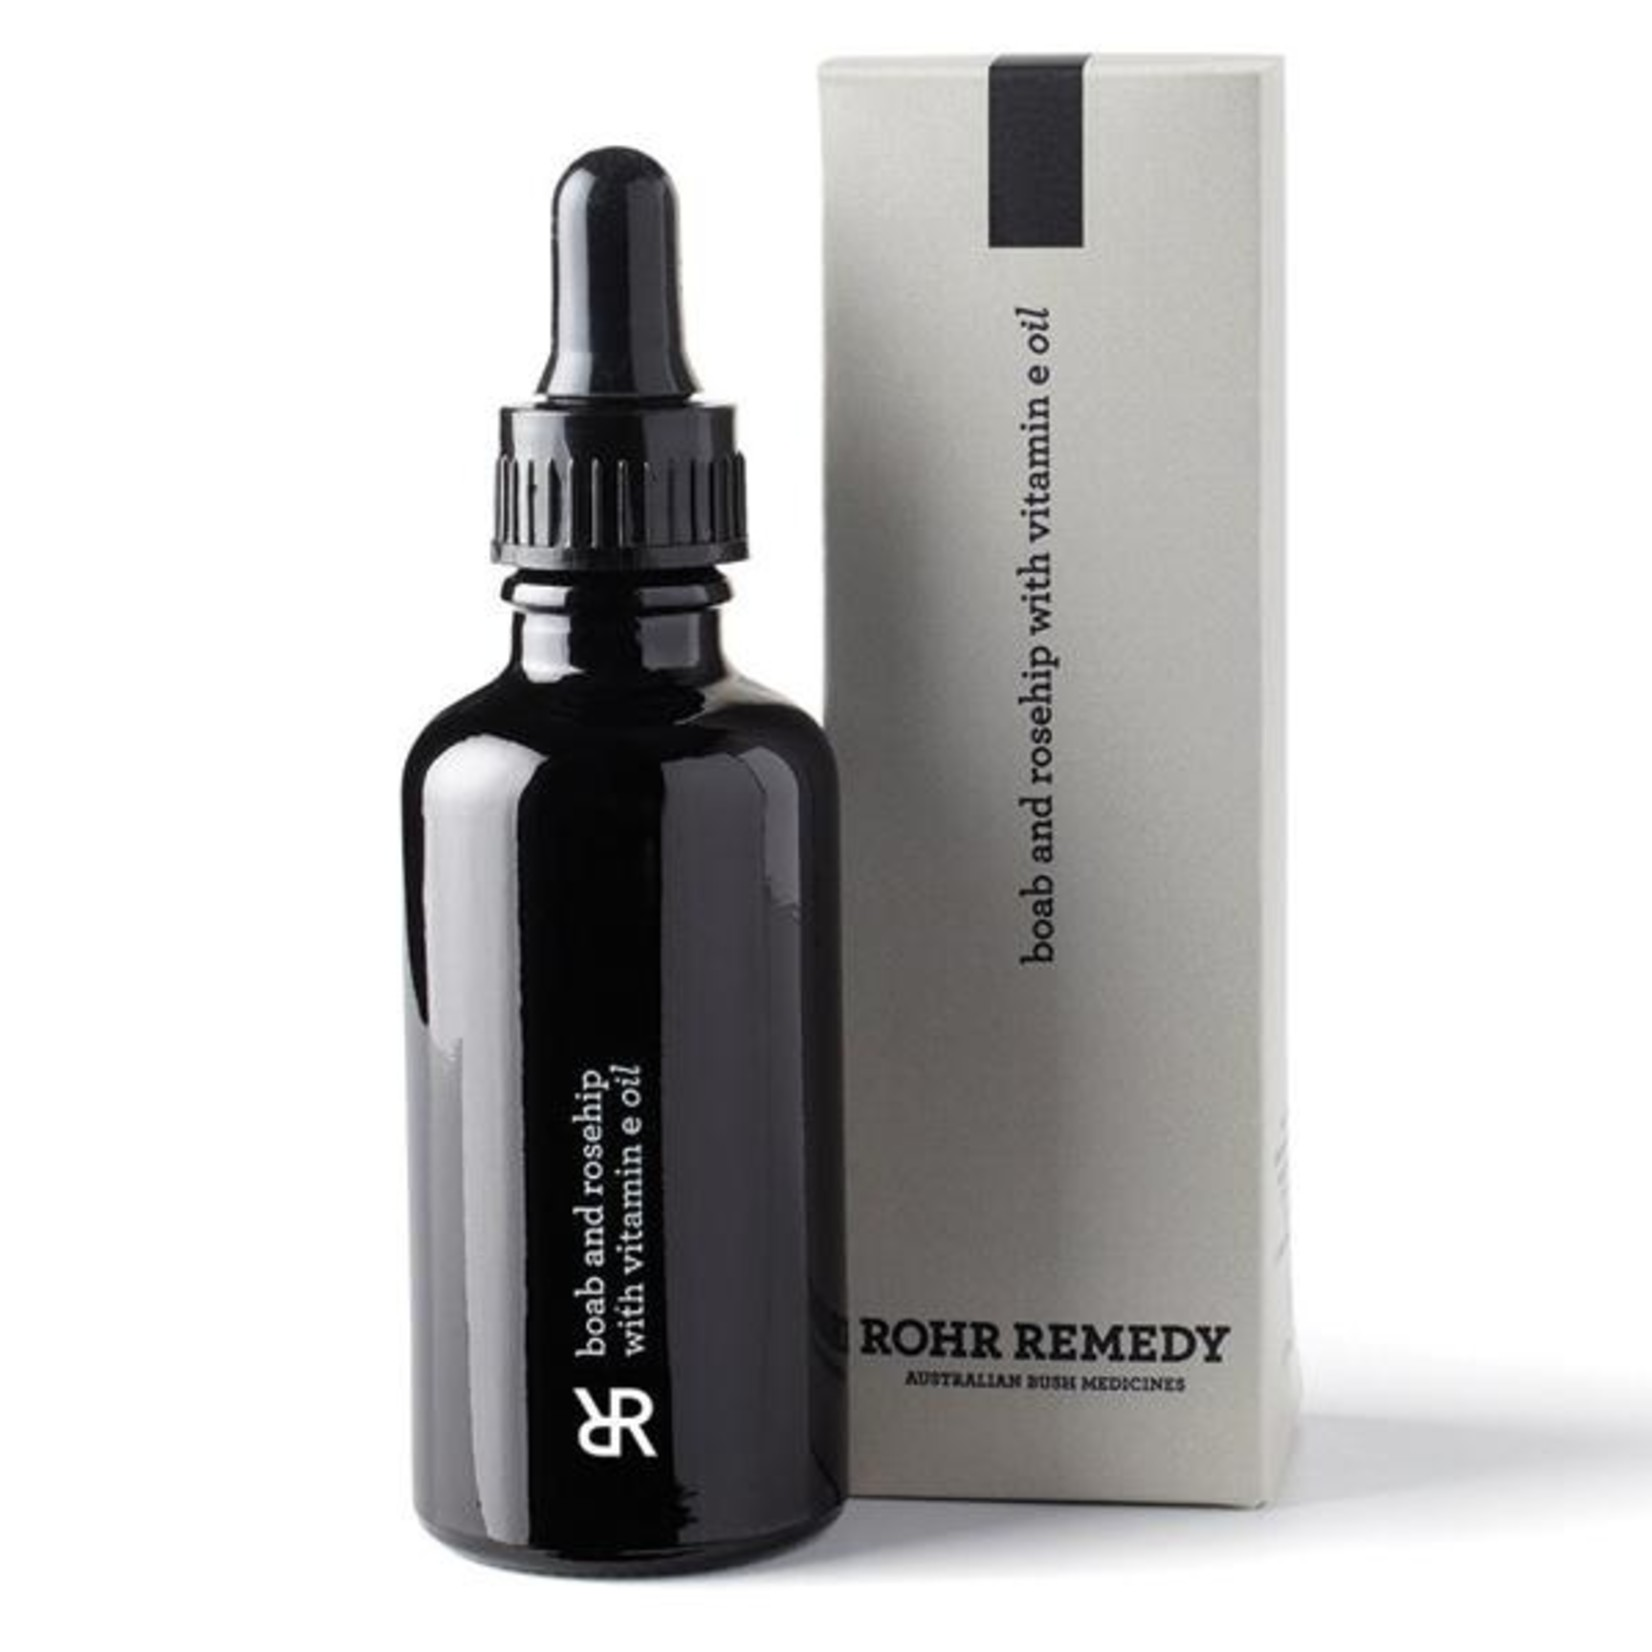 Rohr Remedy Rohr Remedy Boab And Rosehip With Vitamin E Oil